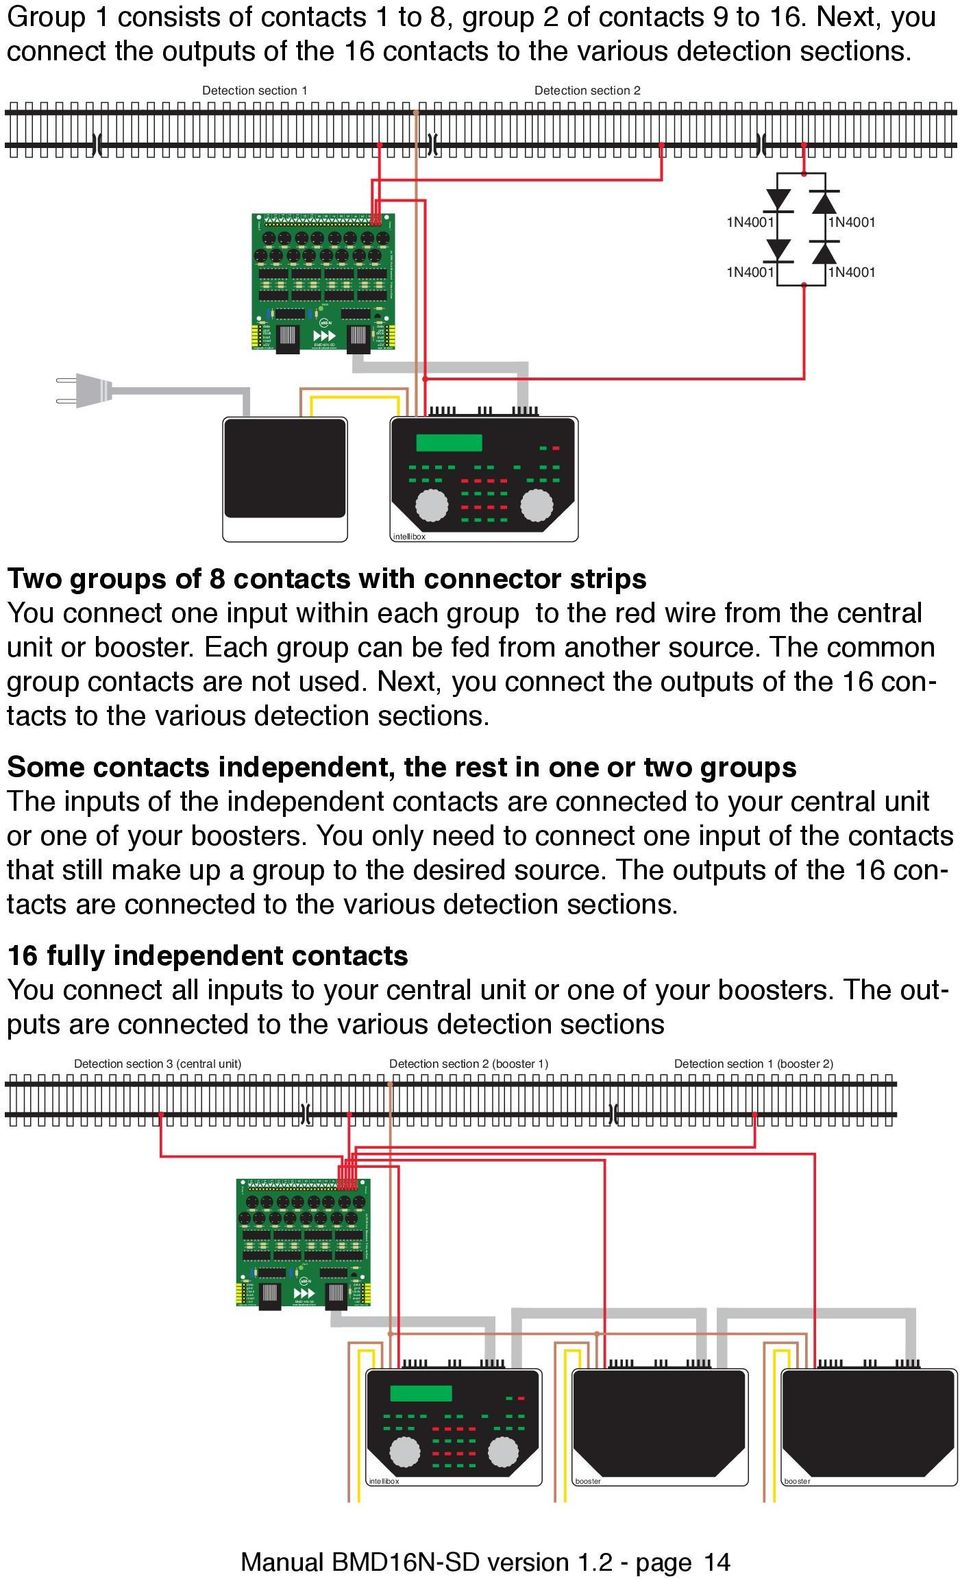 Detection section 1 Detection section 2 Groep 2 Groep 1 1N4001 1N4001 (c) 2008 Huib Maaskant Eddy de Boer 1N4001 1N4001 intellibox Two groups of 8 contacts with connector strips You connect one input